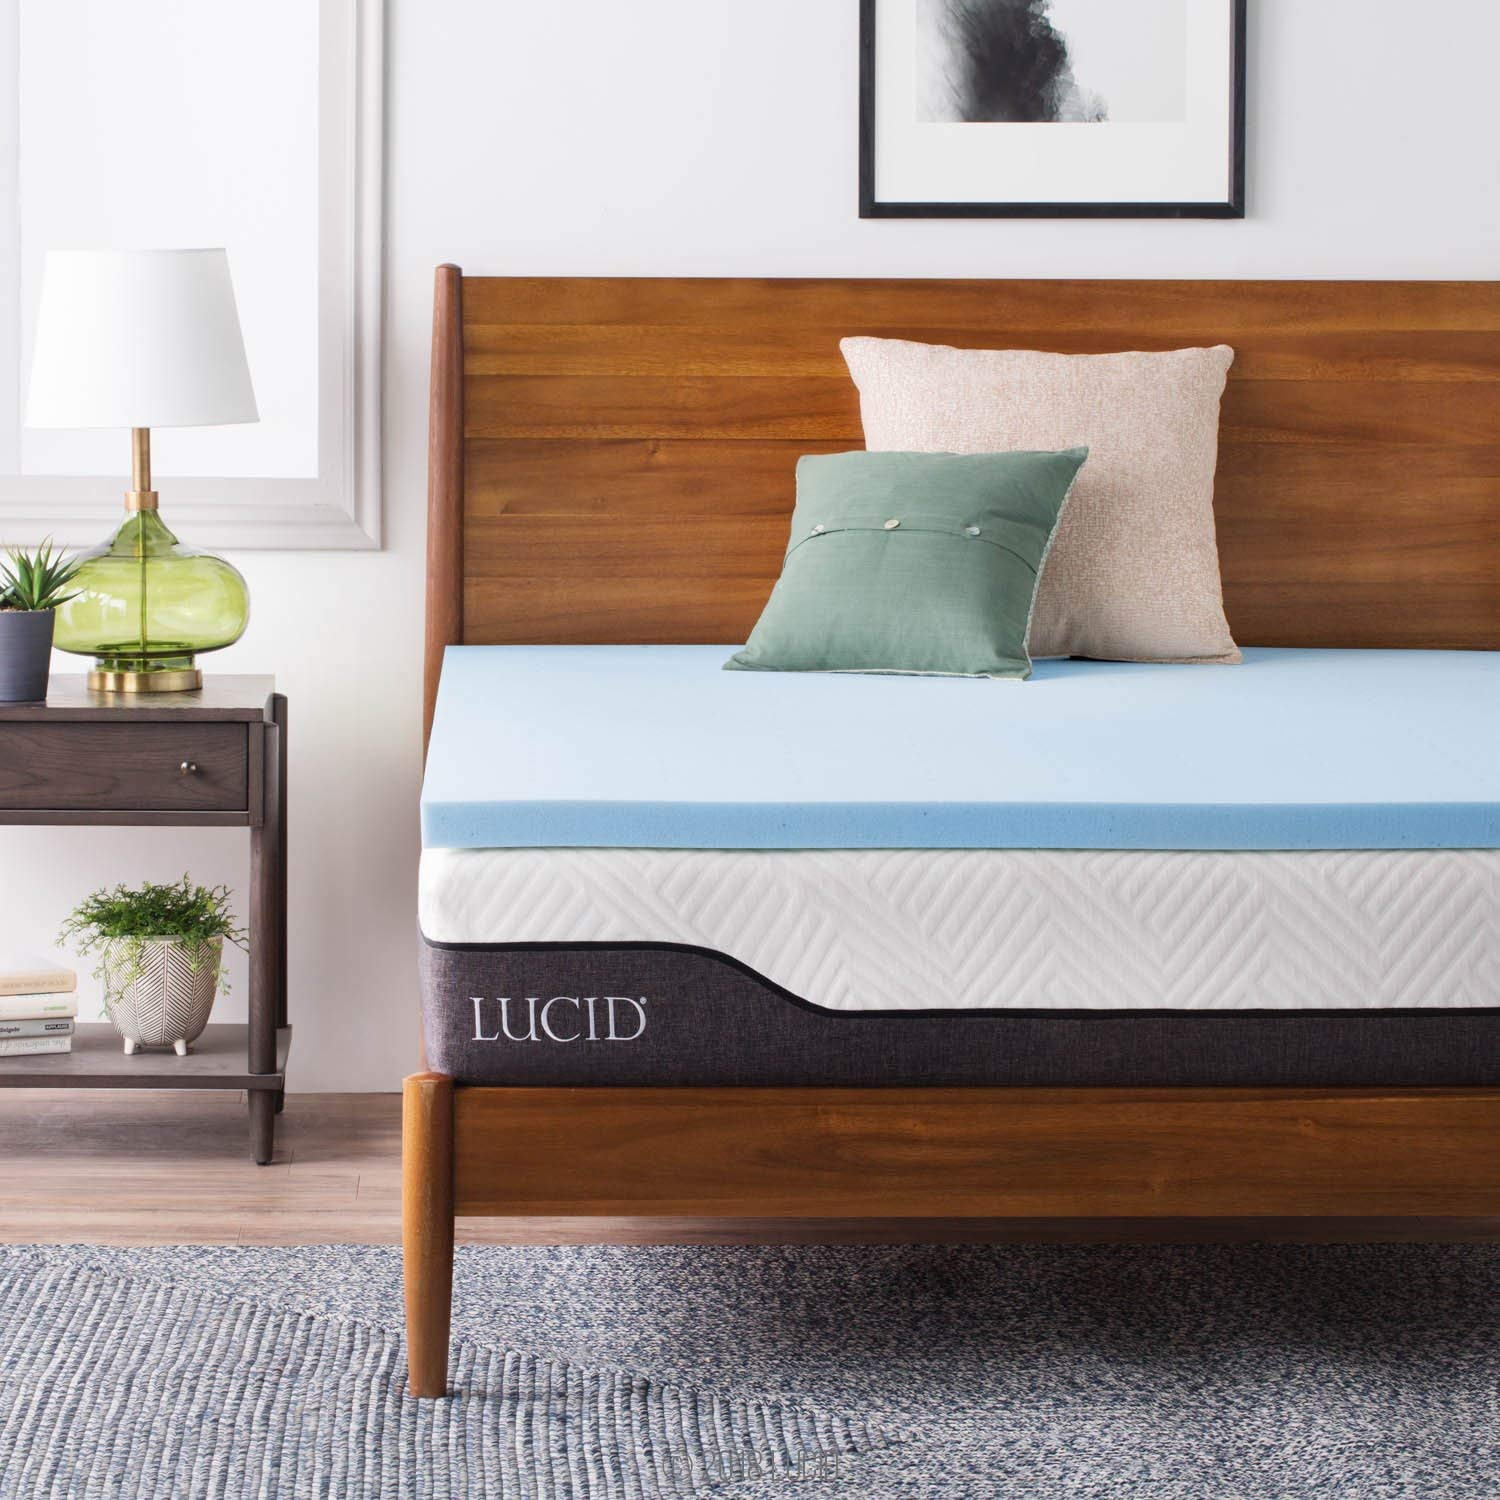 Lucid Two-Inch Gel Memory Foam Mattress Topper